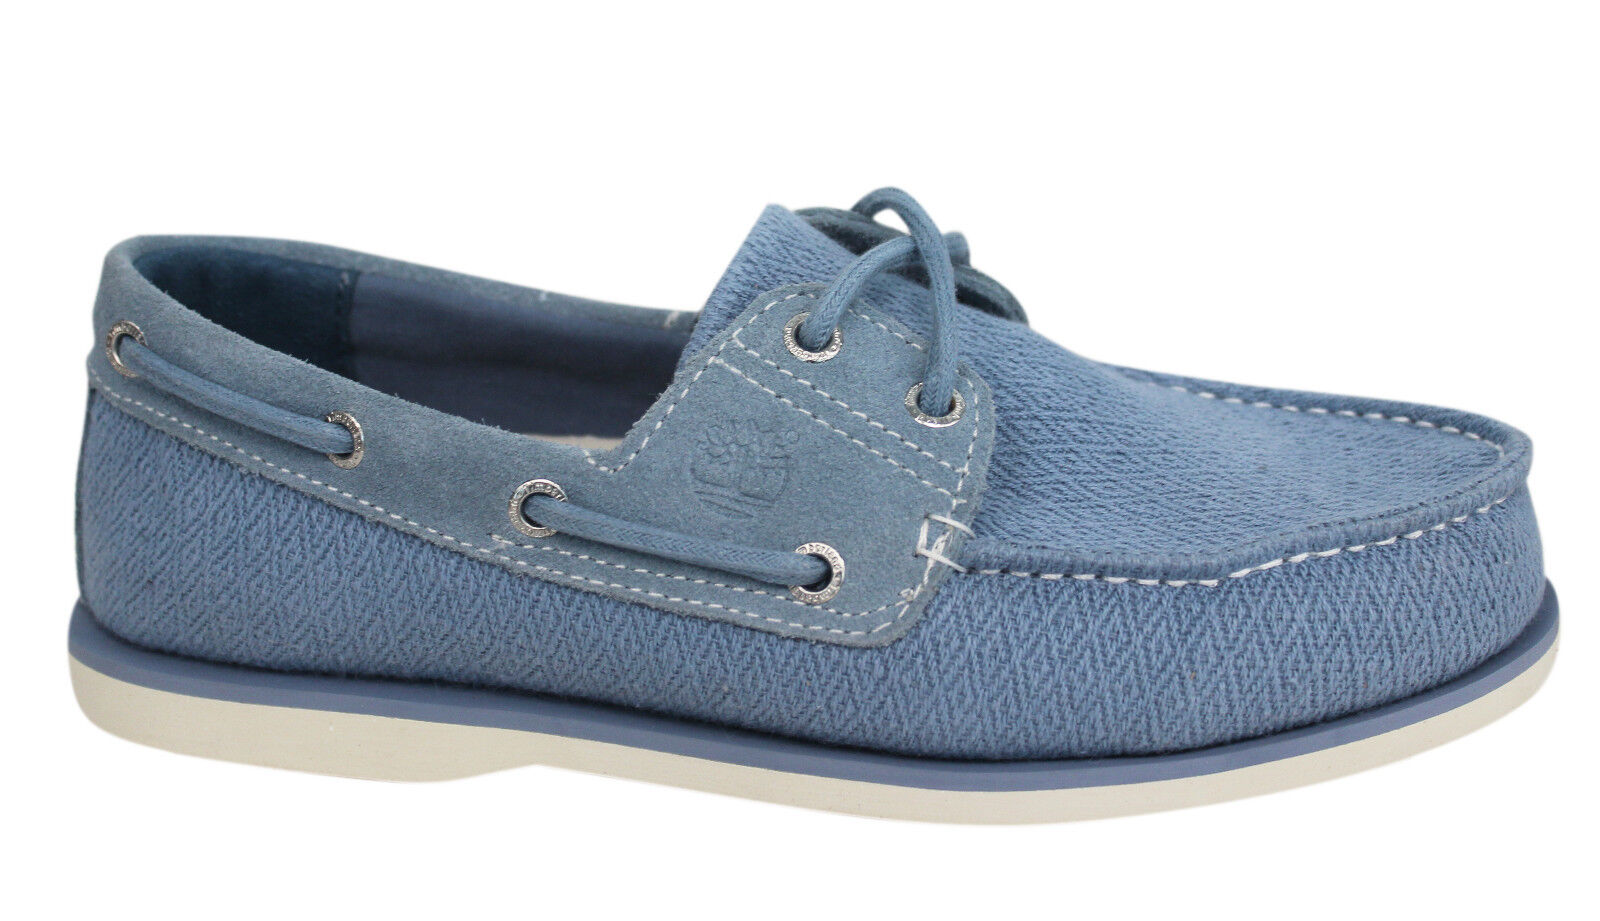 Details about Timberland earthkeepers men lace up leather blue fabric boat shoe show original title